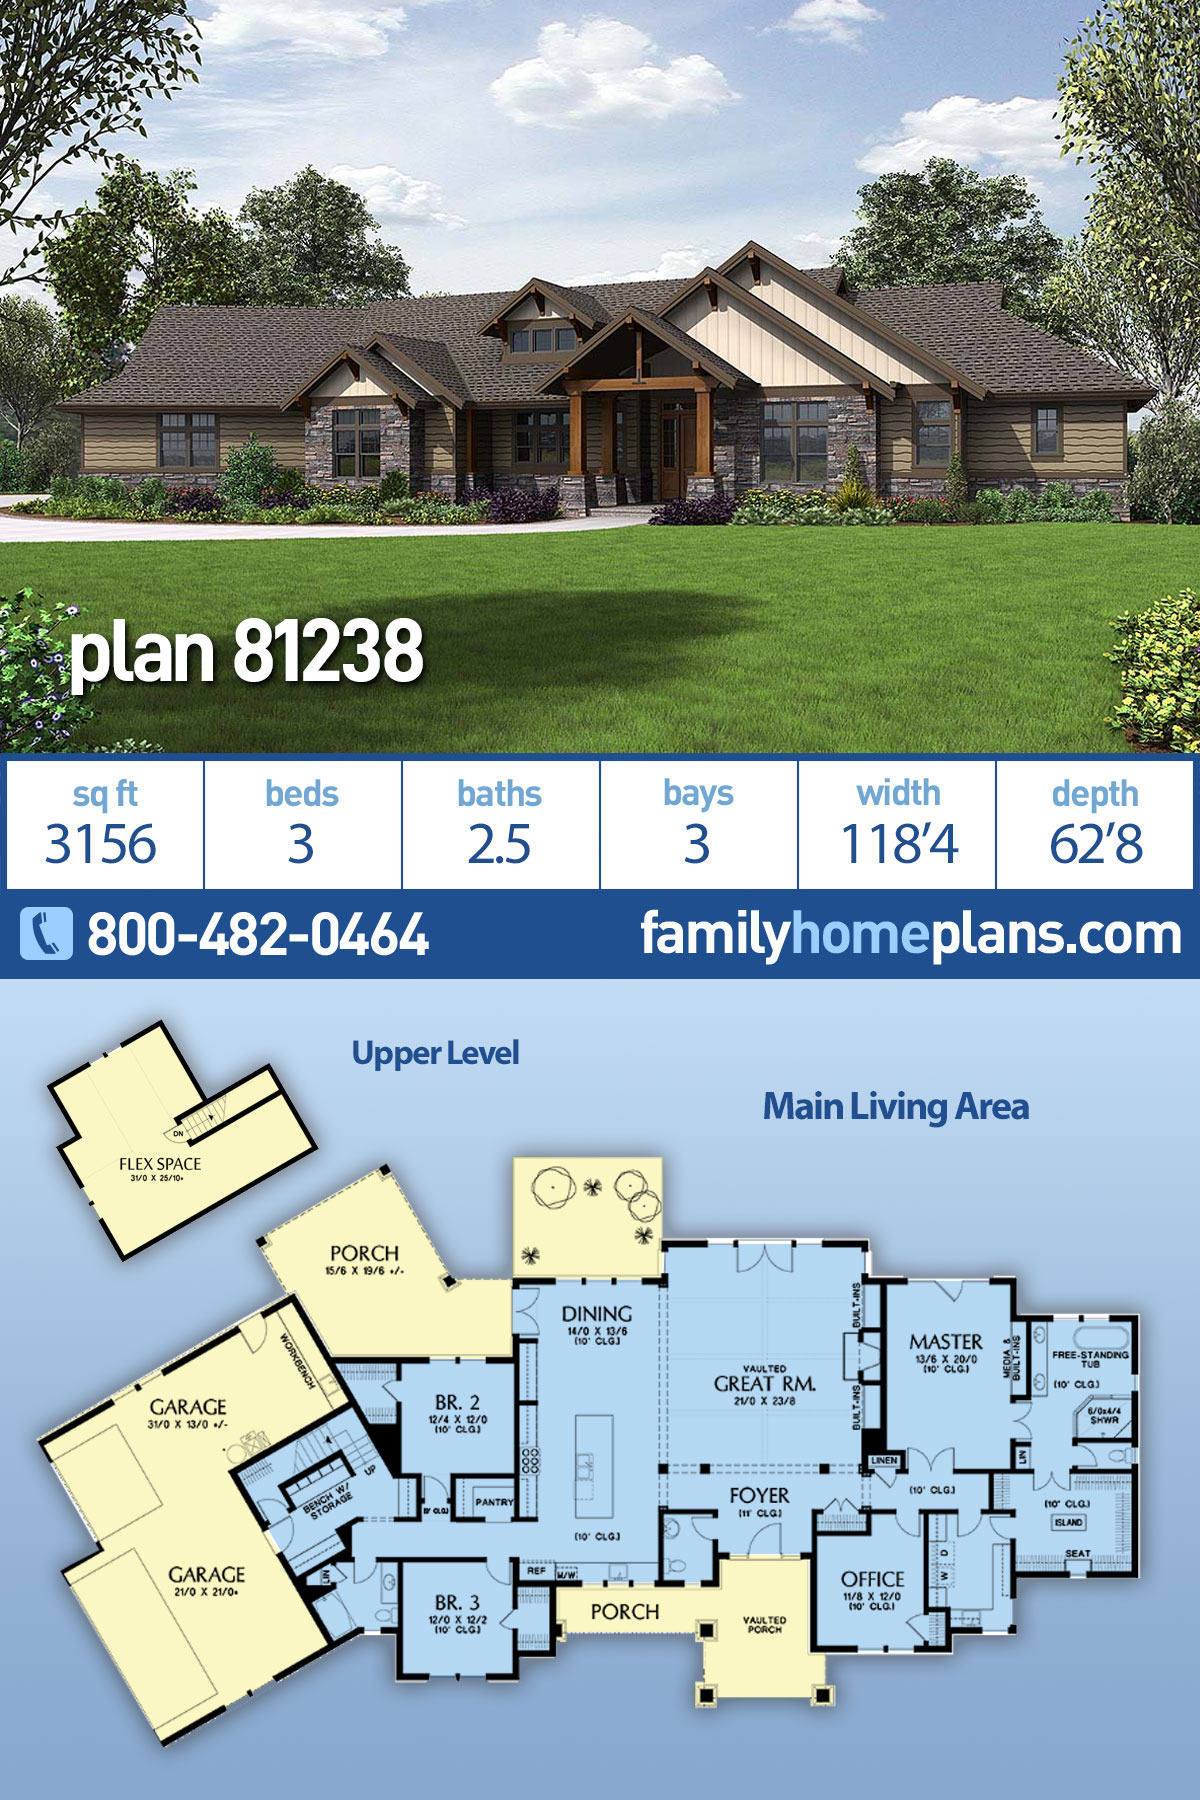 New Craftsman House Plans Unique Craftsman Style House Plan with 3 Bed 3 Bath 3 Car Garage